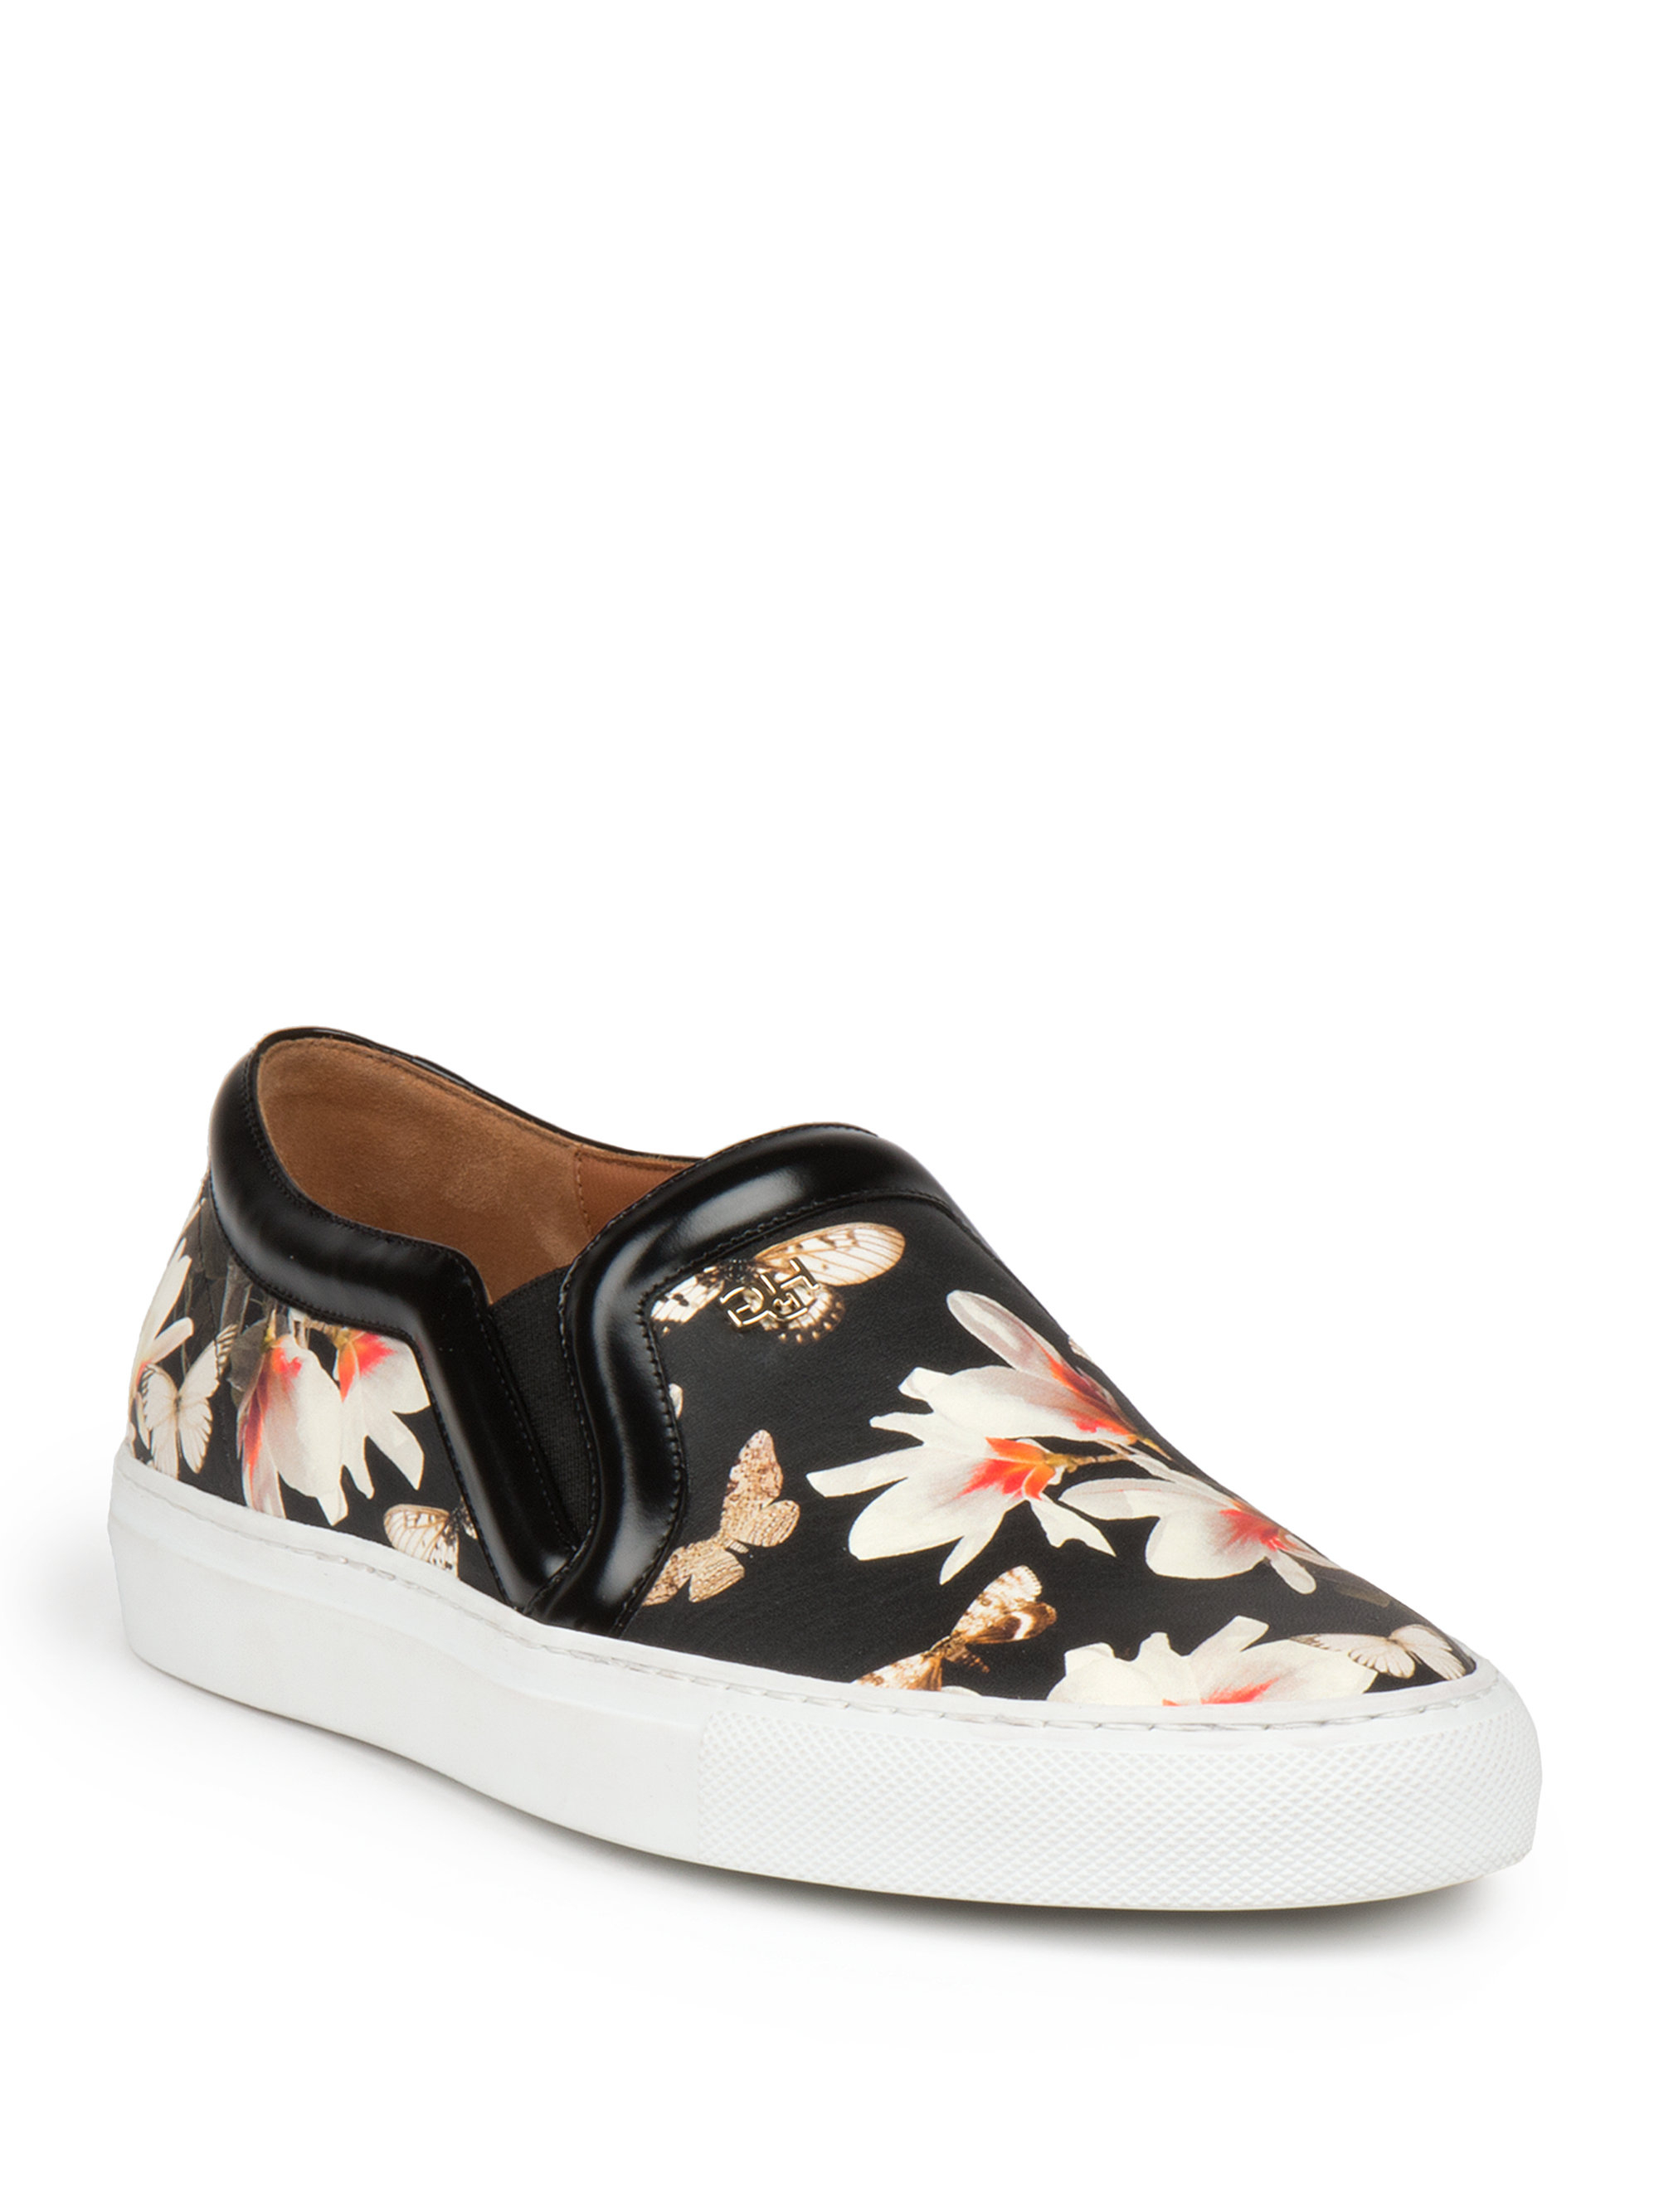 Givenchy Leather Skate Shoes